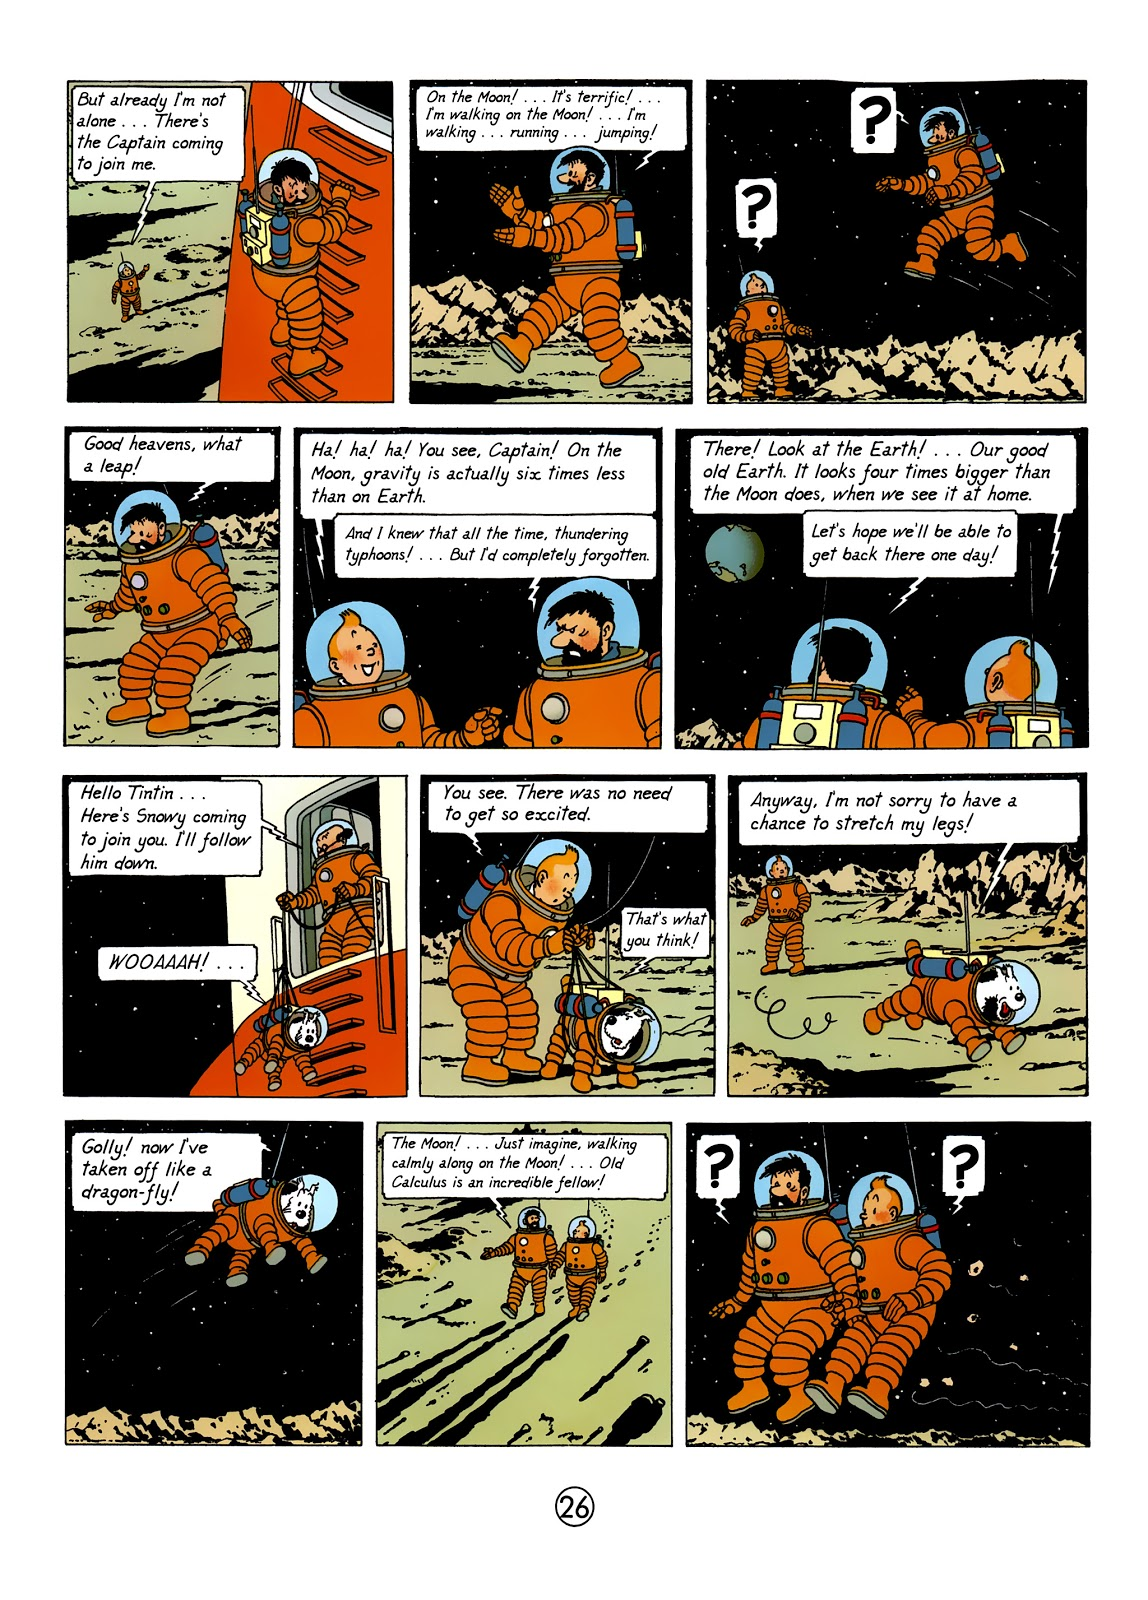 Tintin Explorers on the Moon review